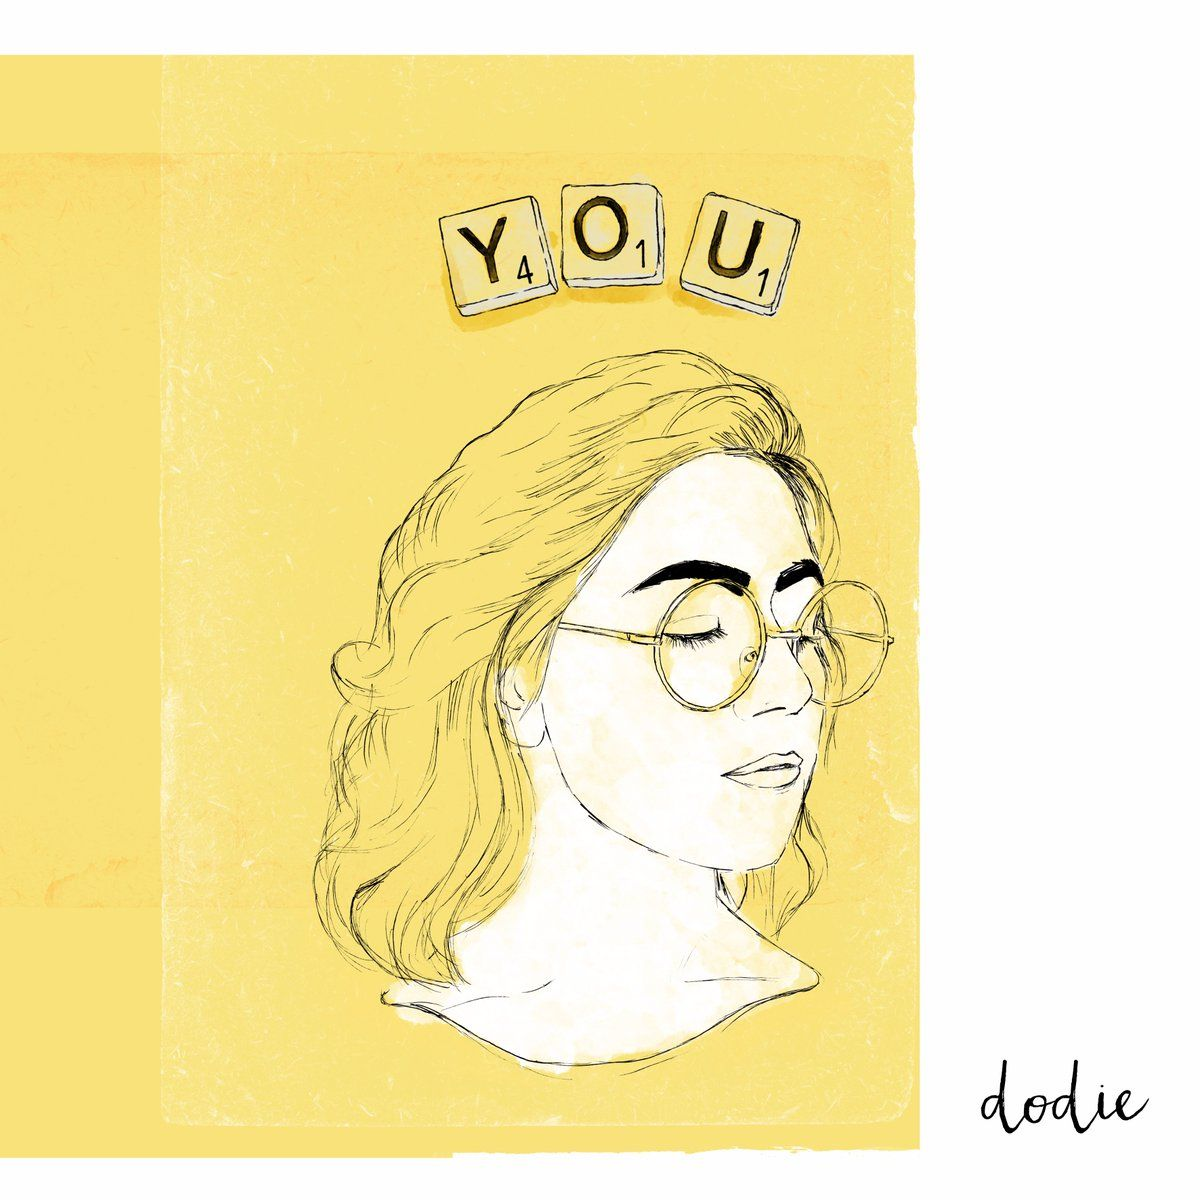 Dodie Doddleoddle Twitter With Images Sketch Book Dodie